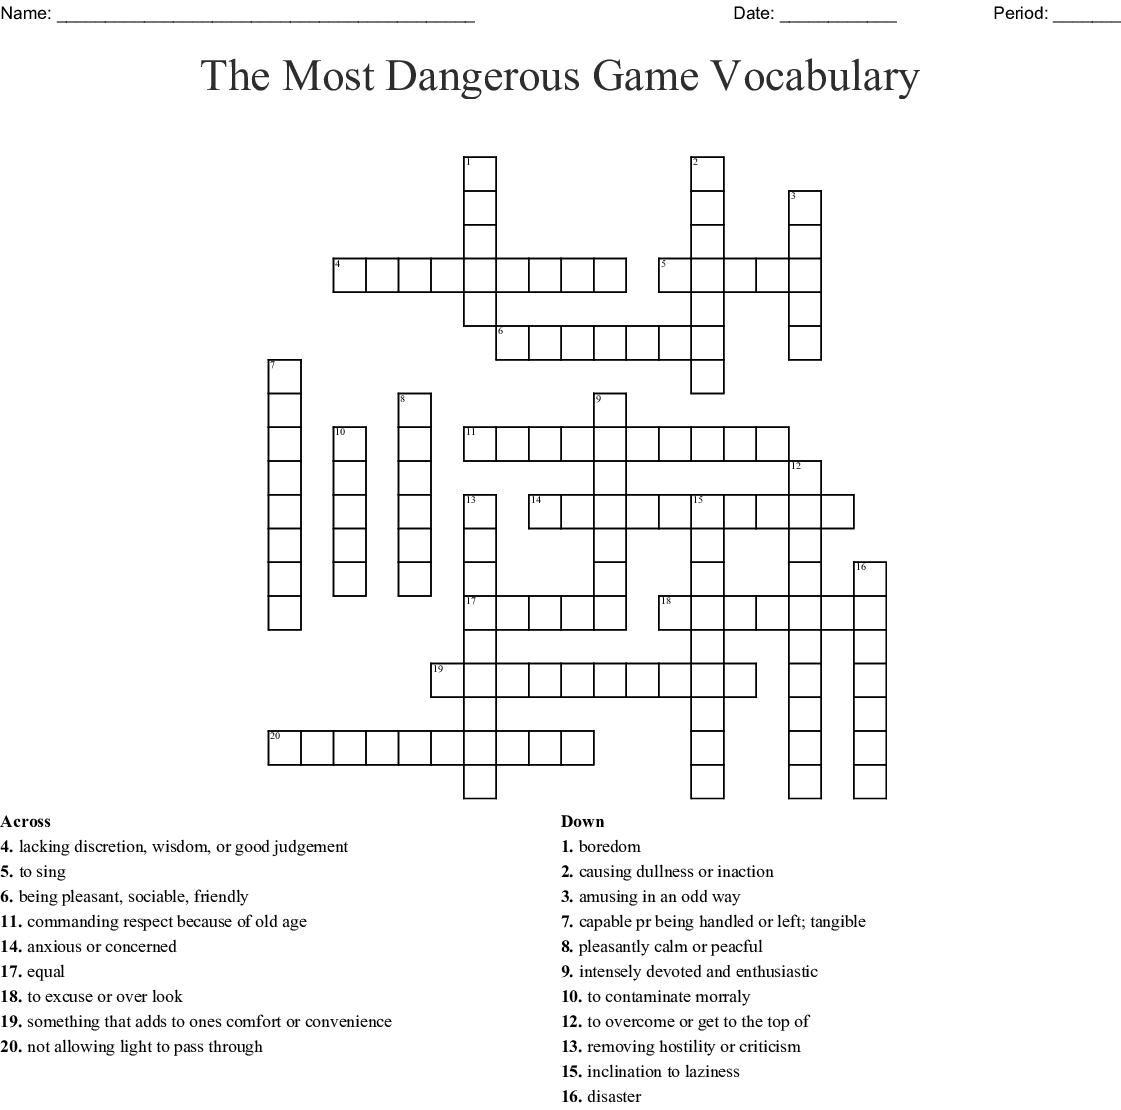 The Most Dangerous Game Vocabulary Worksheet